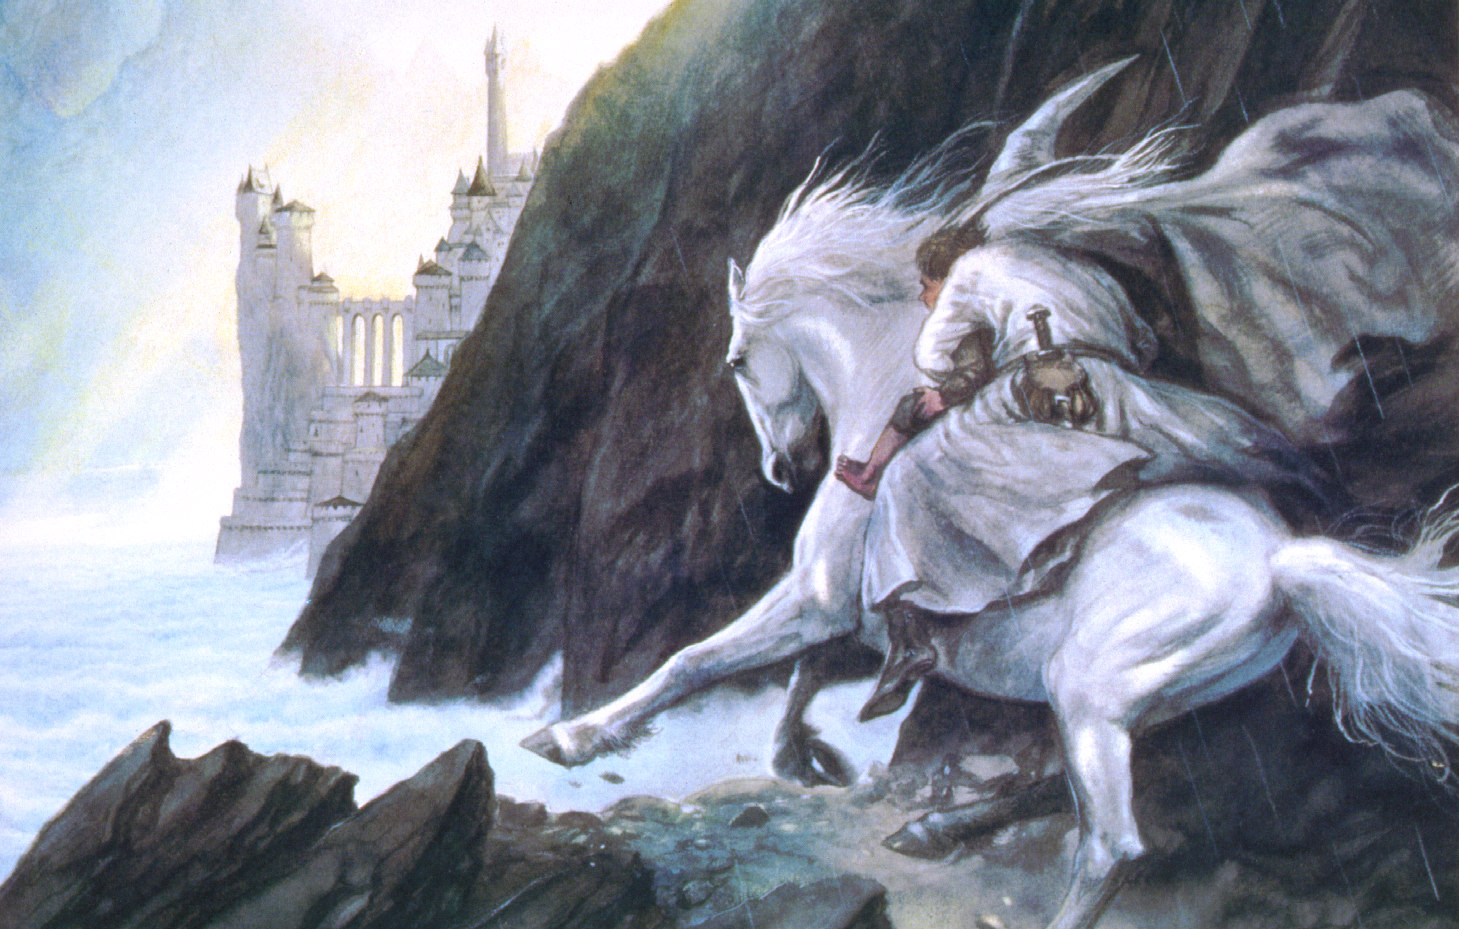 Gandalf Approaches The Guarded City on 1990 Ford Ranger